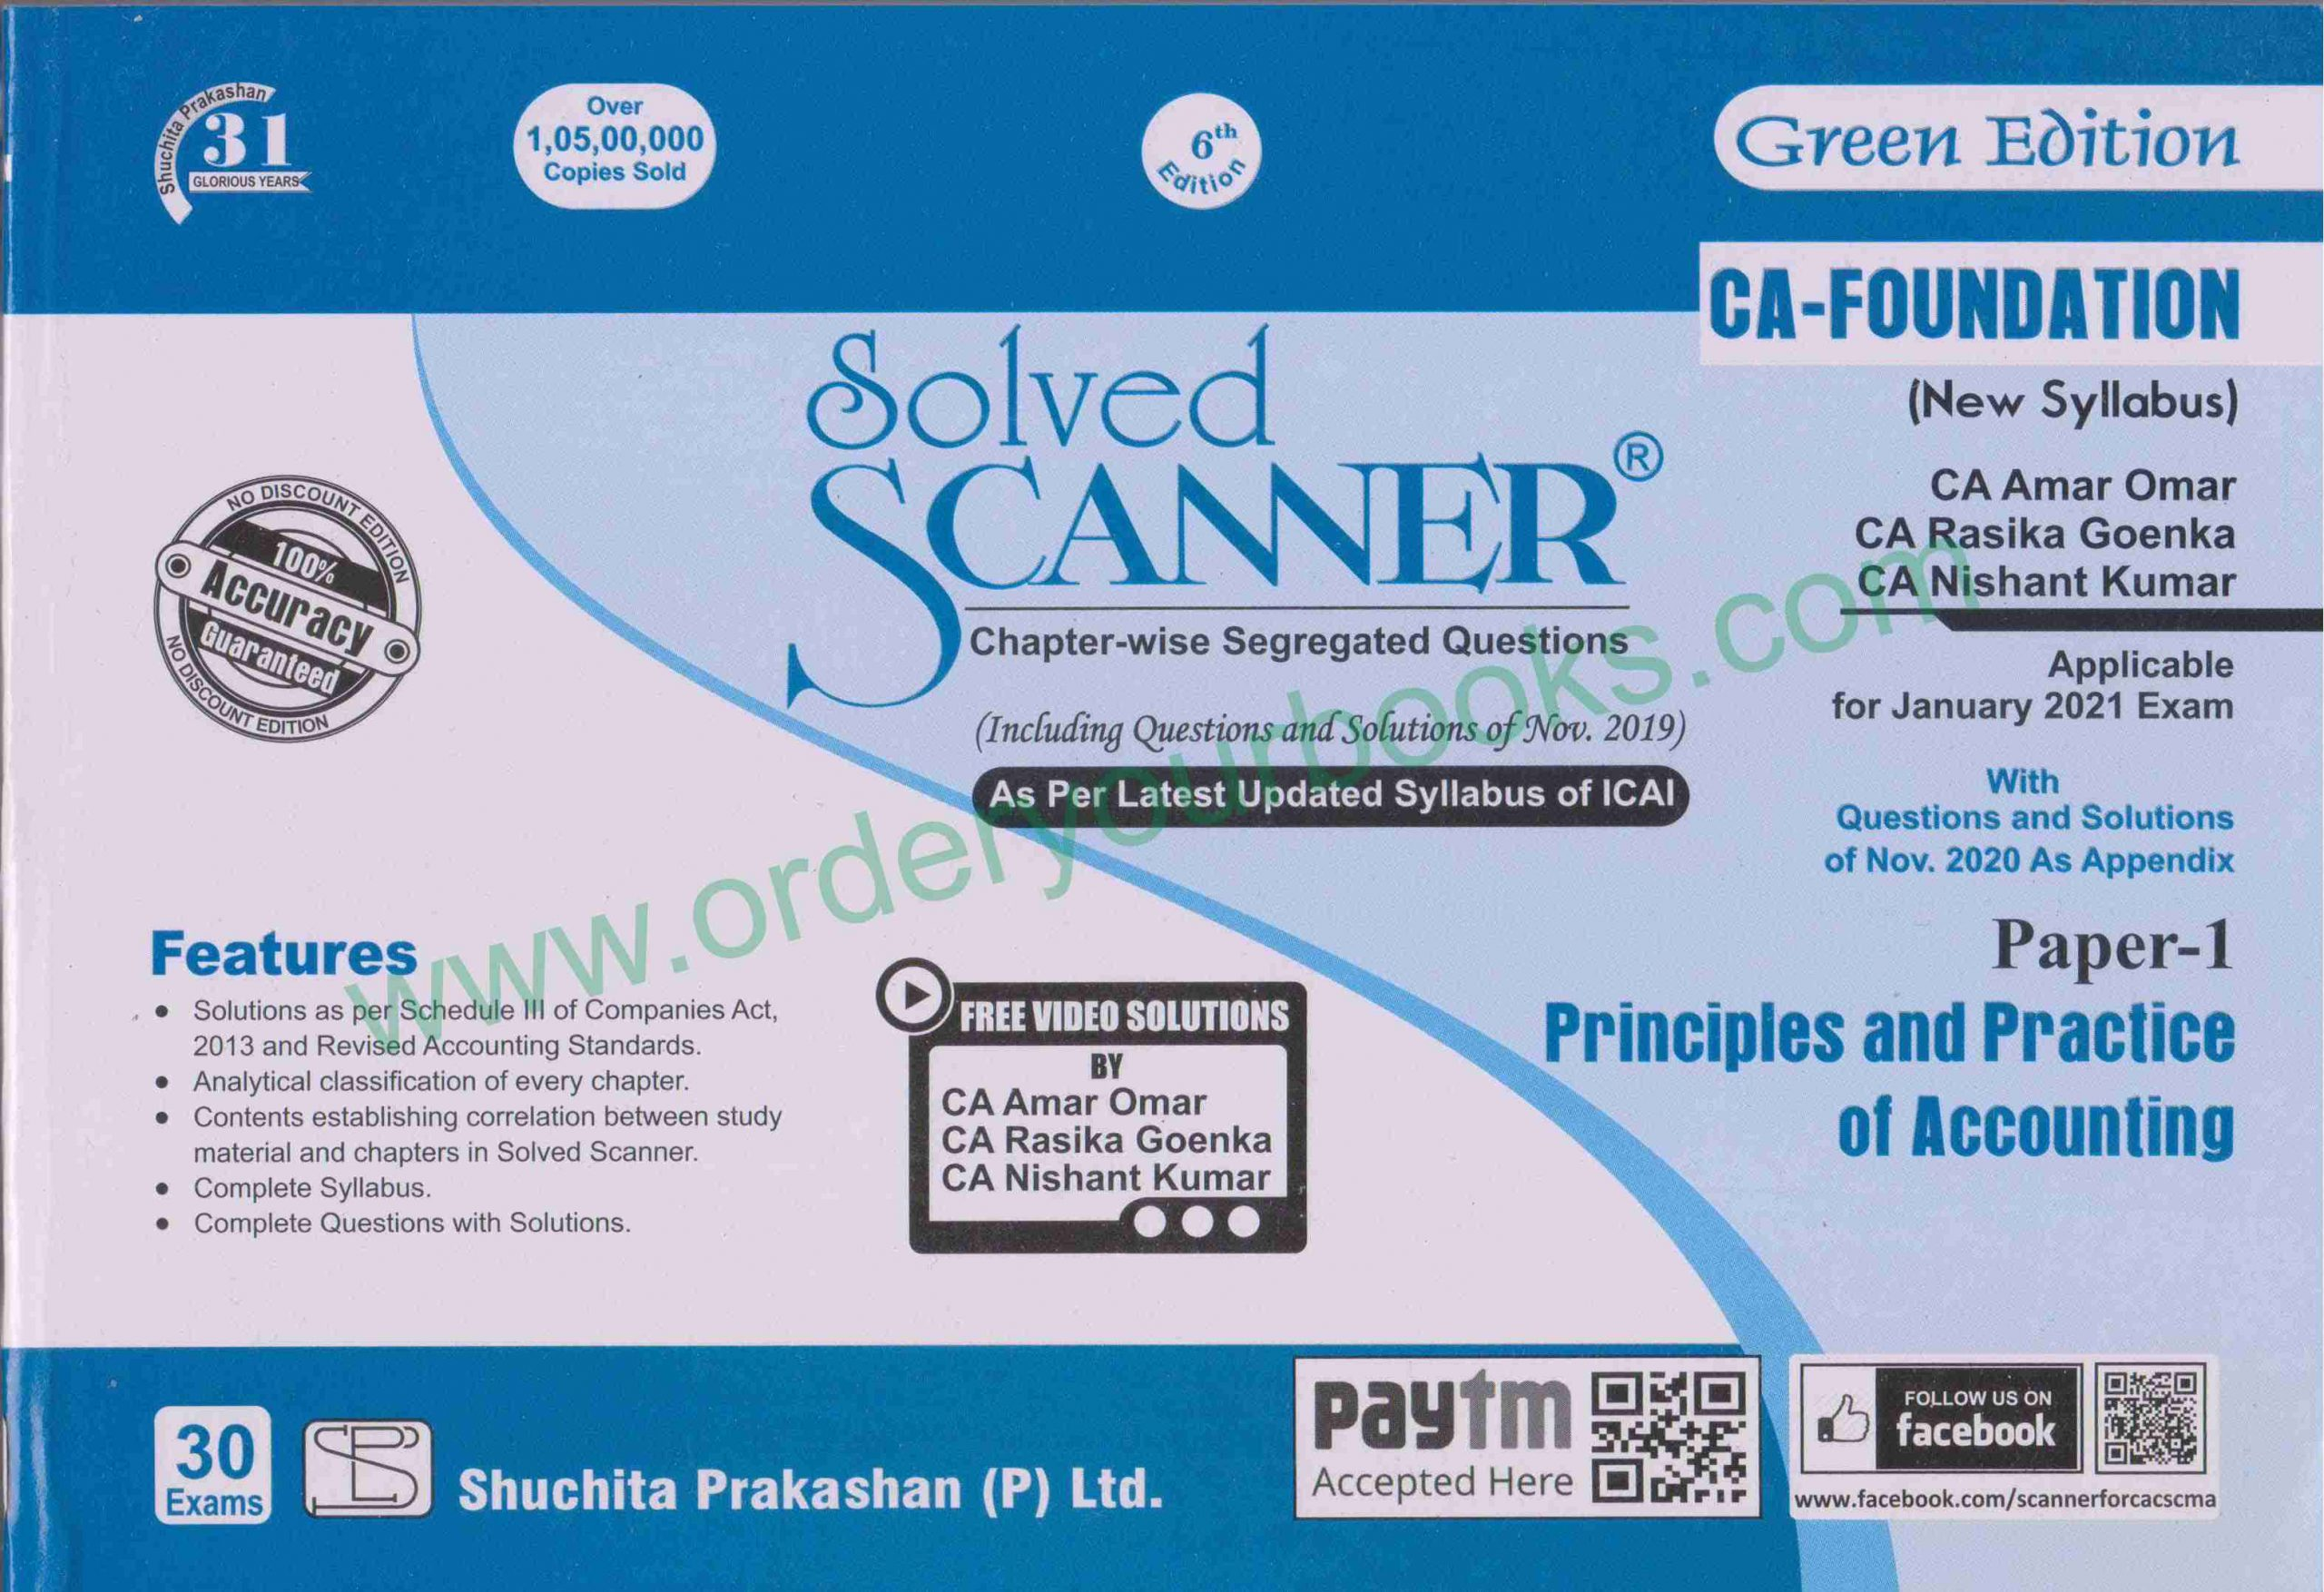 Shuchita CA Foundation Paper 1 (New Syllabus) Principles and Practice of Accounting Solved Scanner by CA Amar Omar, CA Rasika & Nishant Kumar for 2021 ATTEMPT